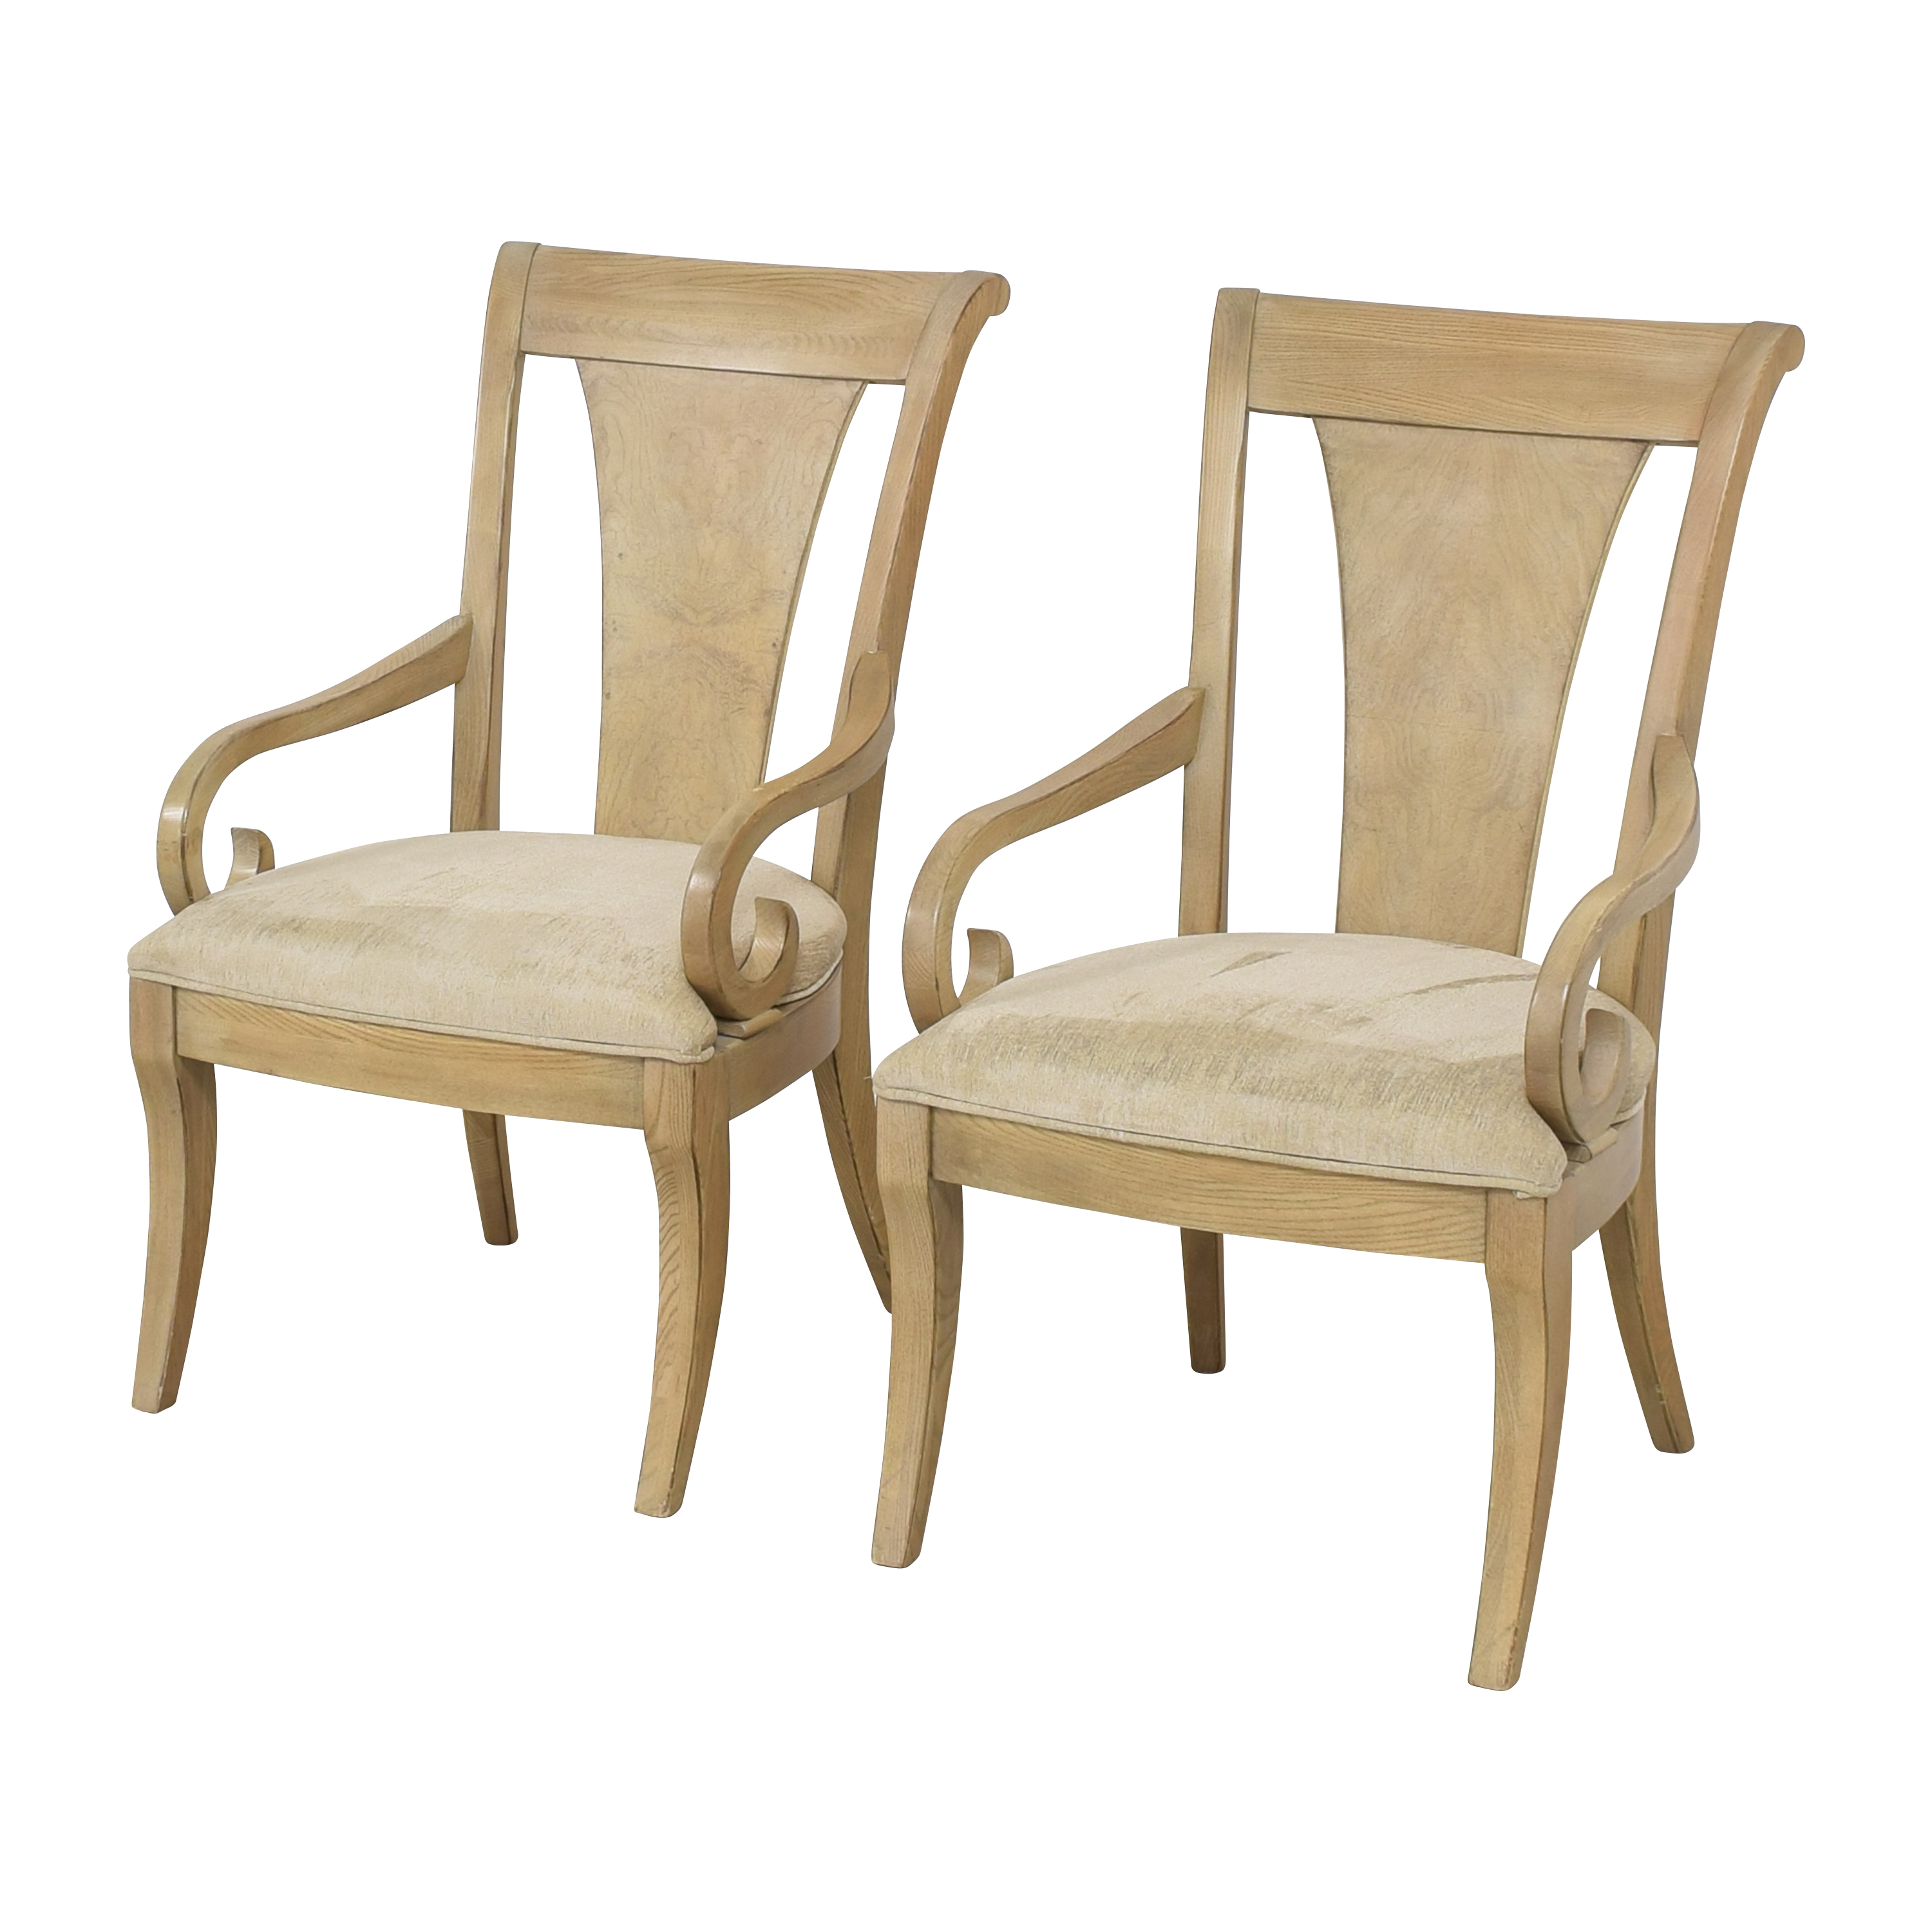 Drexel Heritage Drexel Heritage Dining Arm Chairs ct